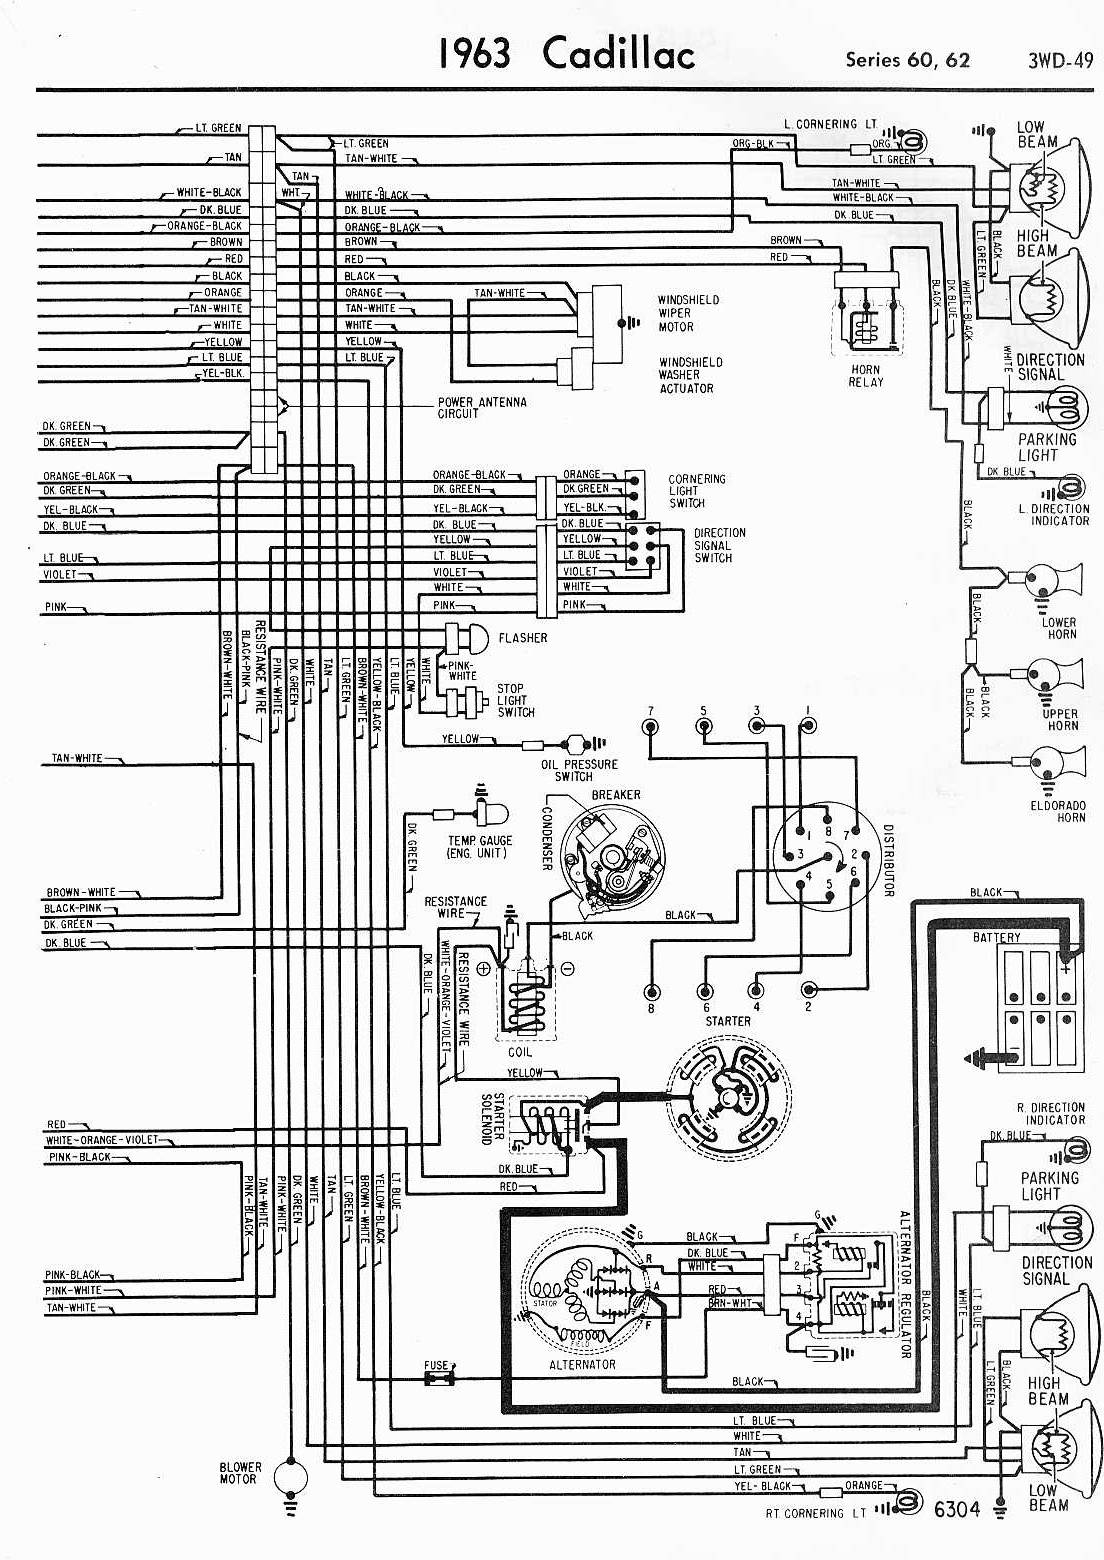 wiring diagram for 195758 cadillac eldorado brougham part 2 wire rh linxglobal co Simple Automotive Wiring Diagram 68 Corvette Wiring Diagram